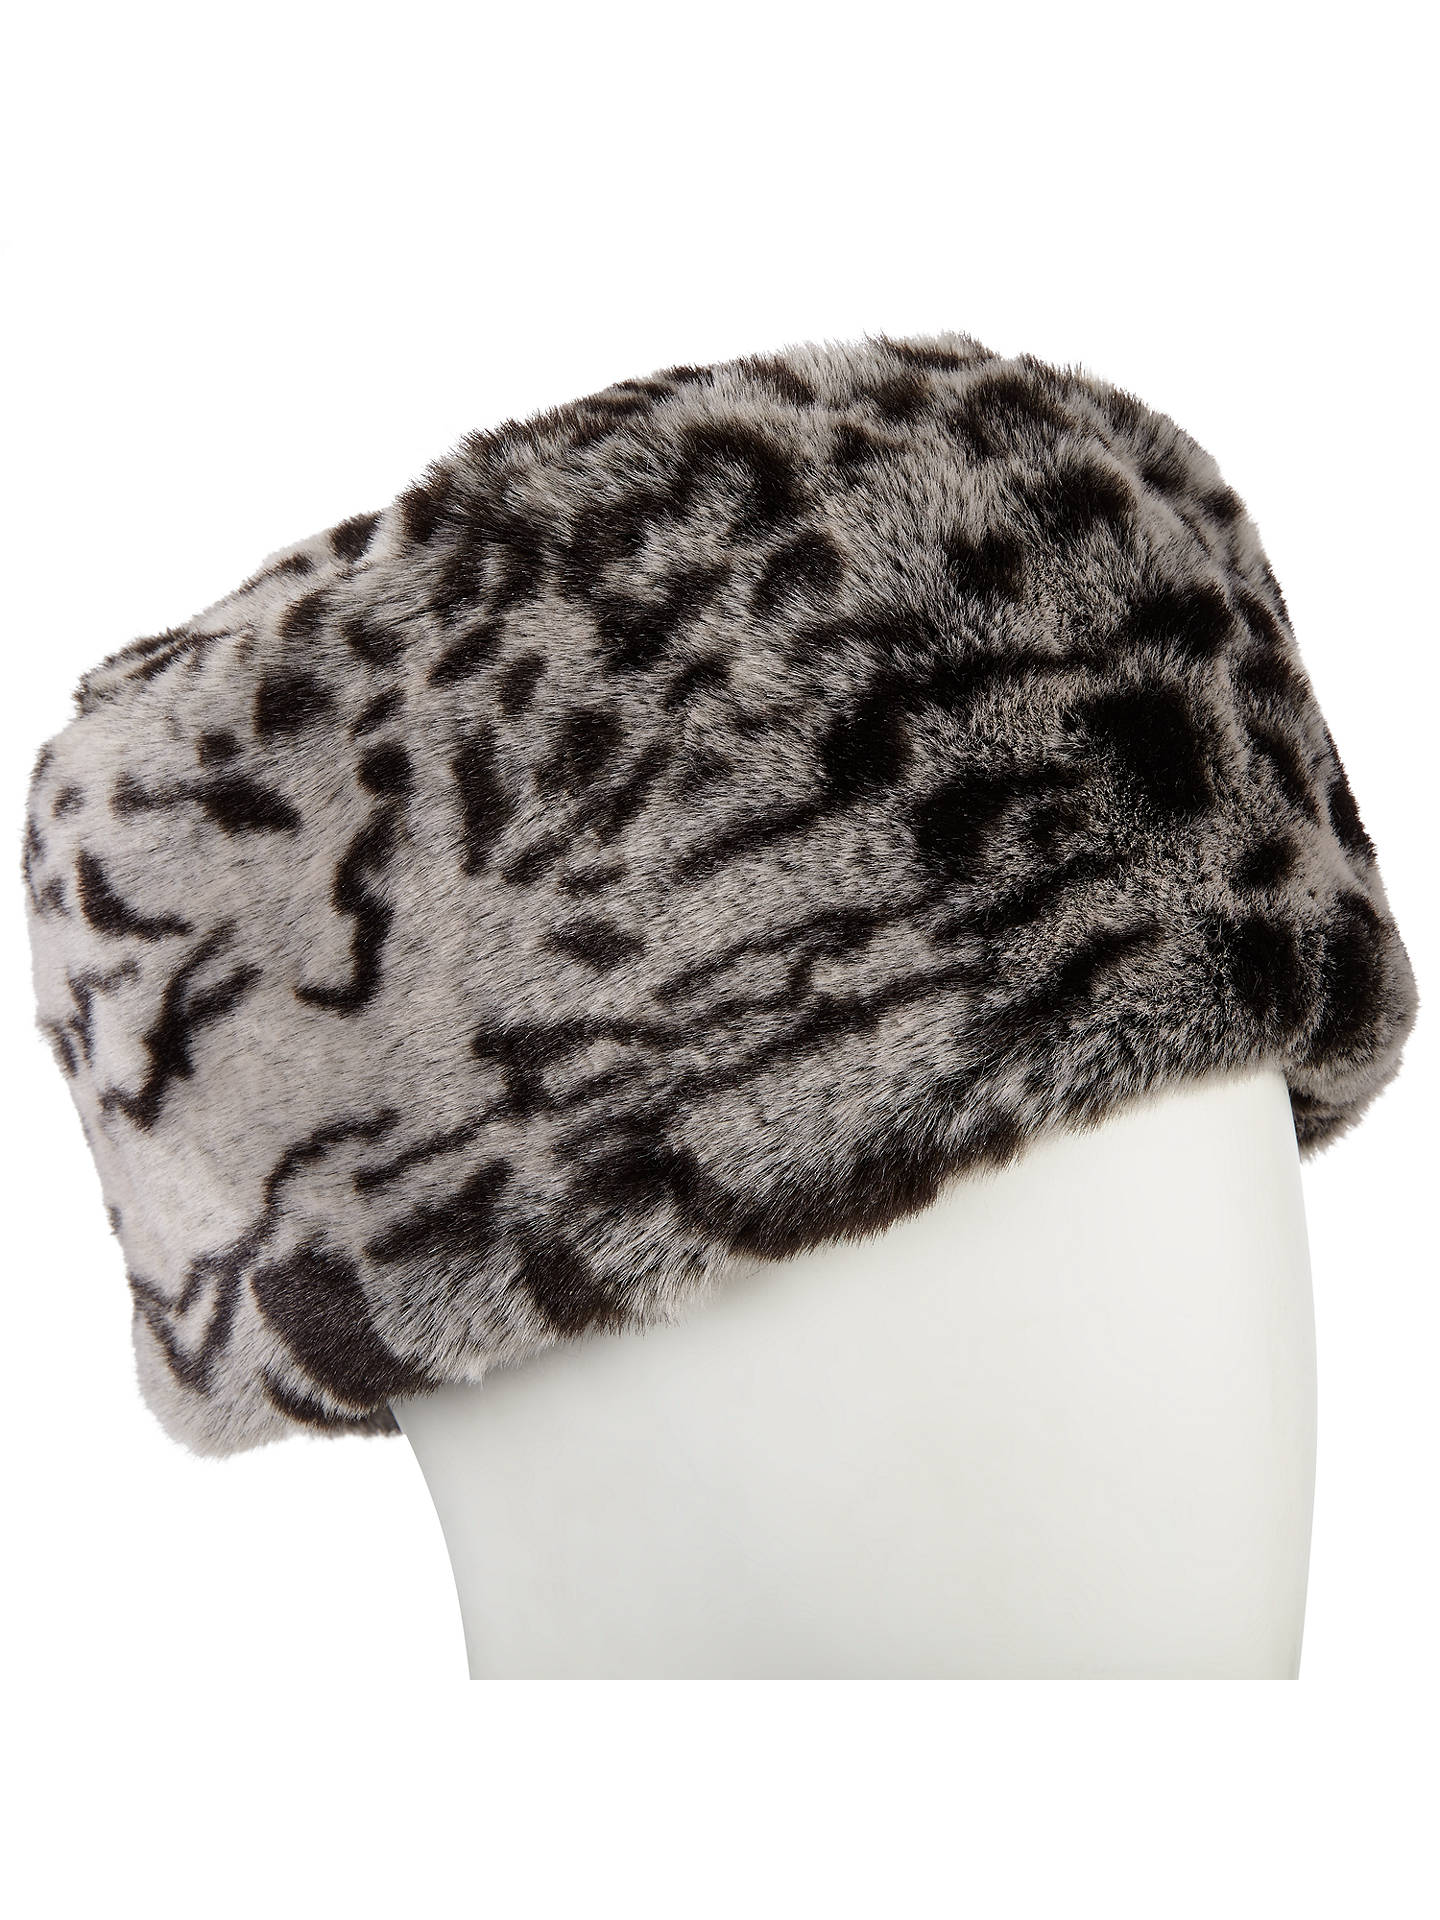 93714775f2bf2 ... Buy John Lewis Animal Print Faux Fur Cossack Hat